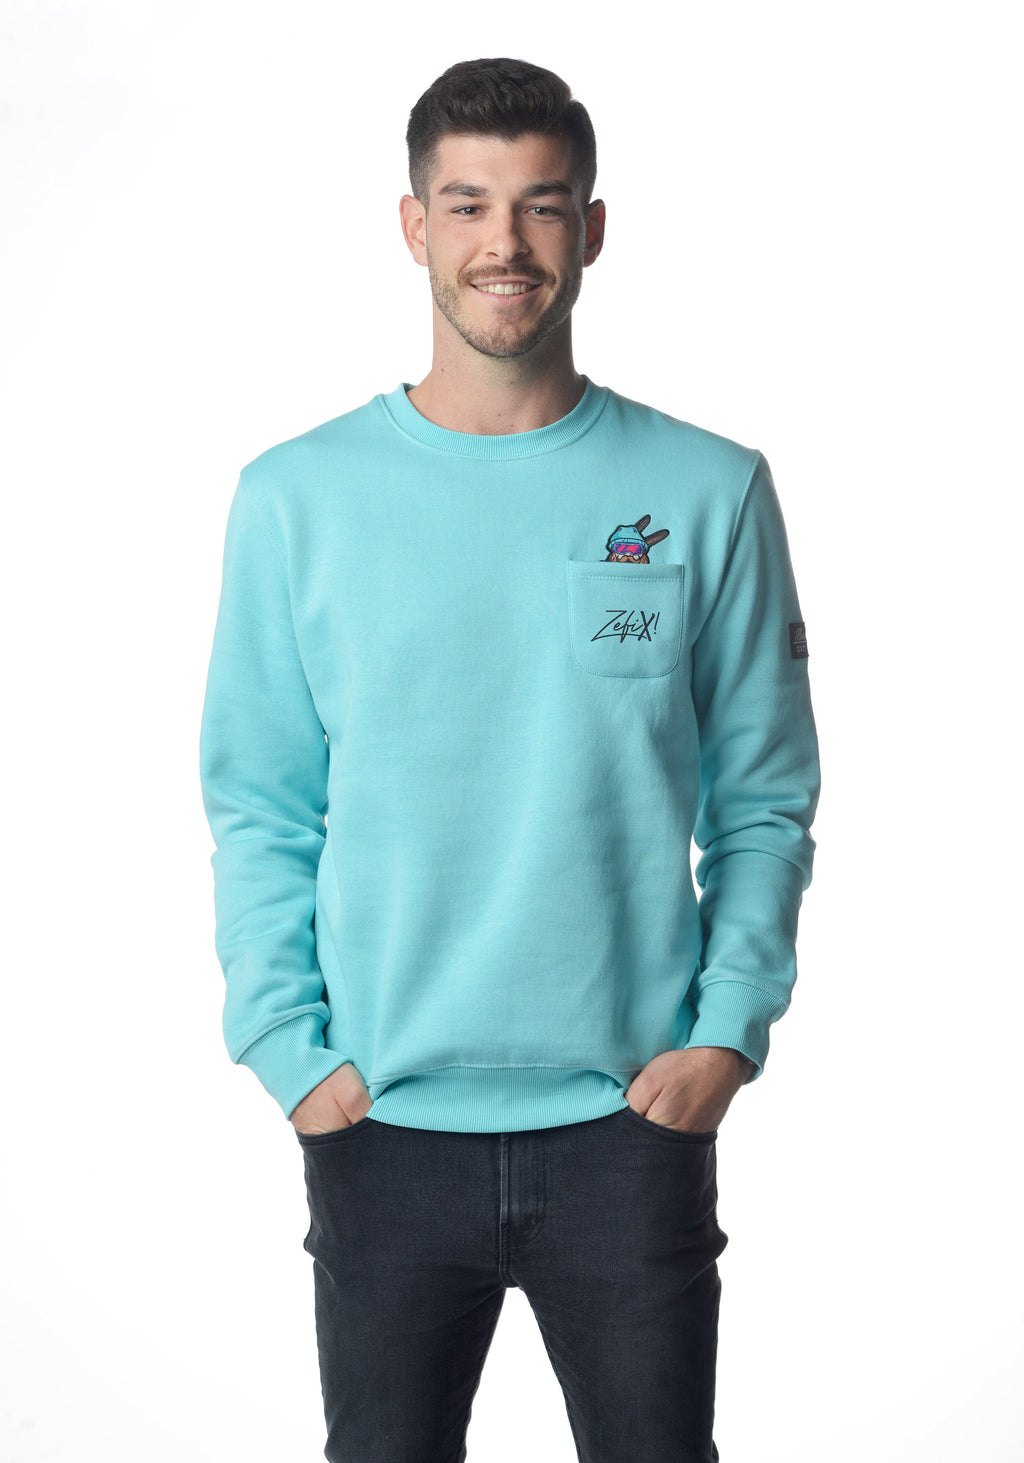 Taschen Winter Grantler Sweatshirt türkis Men